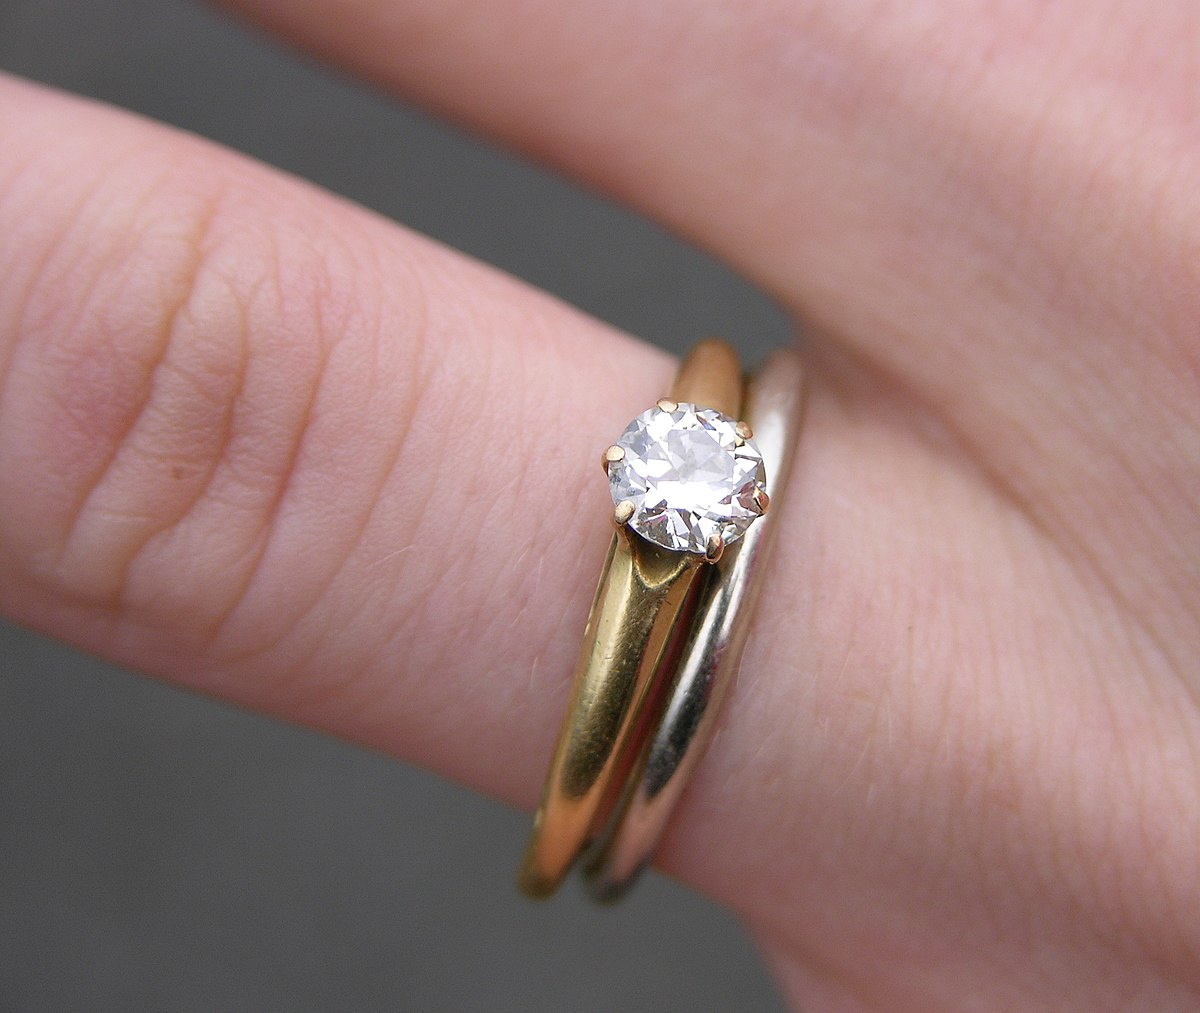 Engagement ring pictures of wedding rings